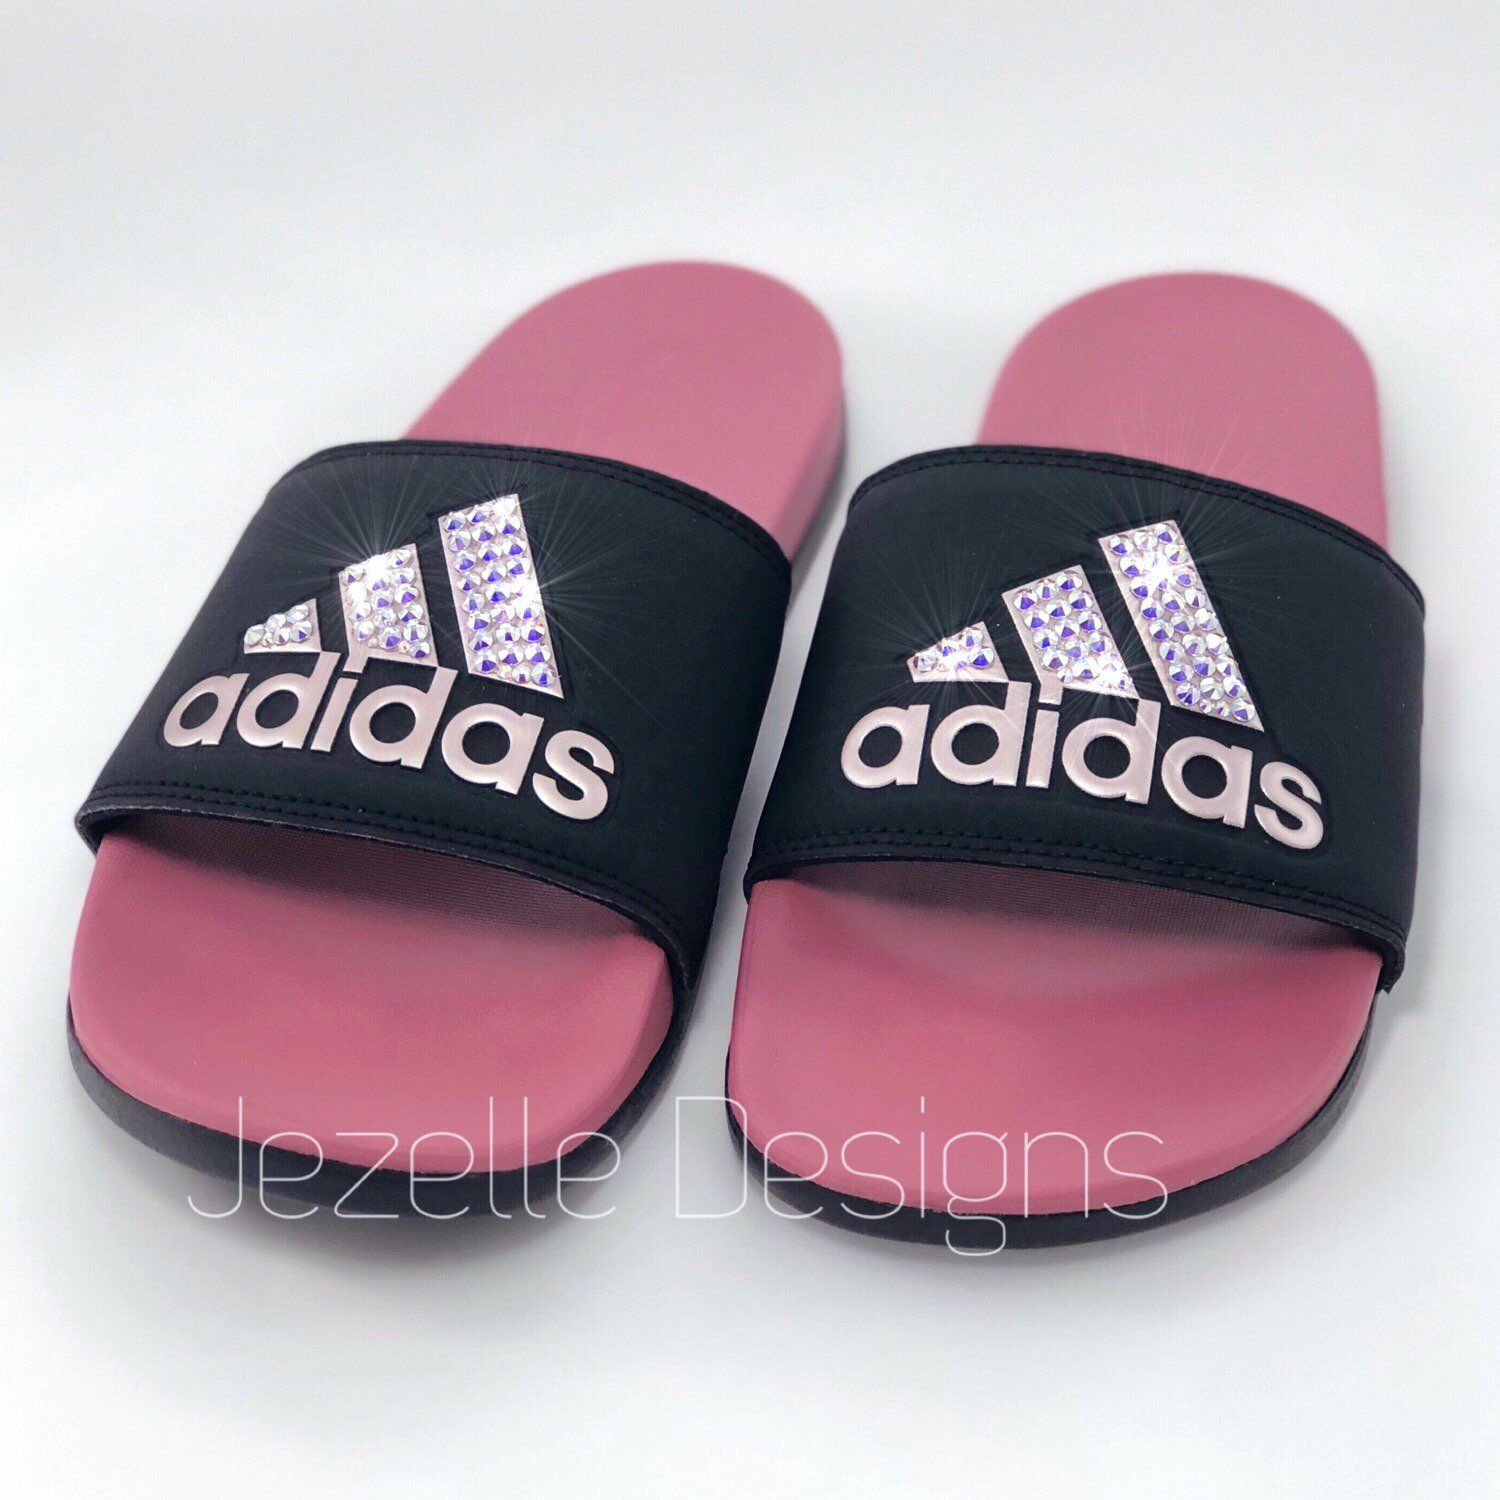 6eb5f8937b08 Life is better with a little sparkle! 💖 ~Jezelle Designs~ Adidas Slides